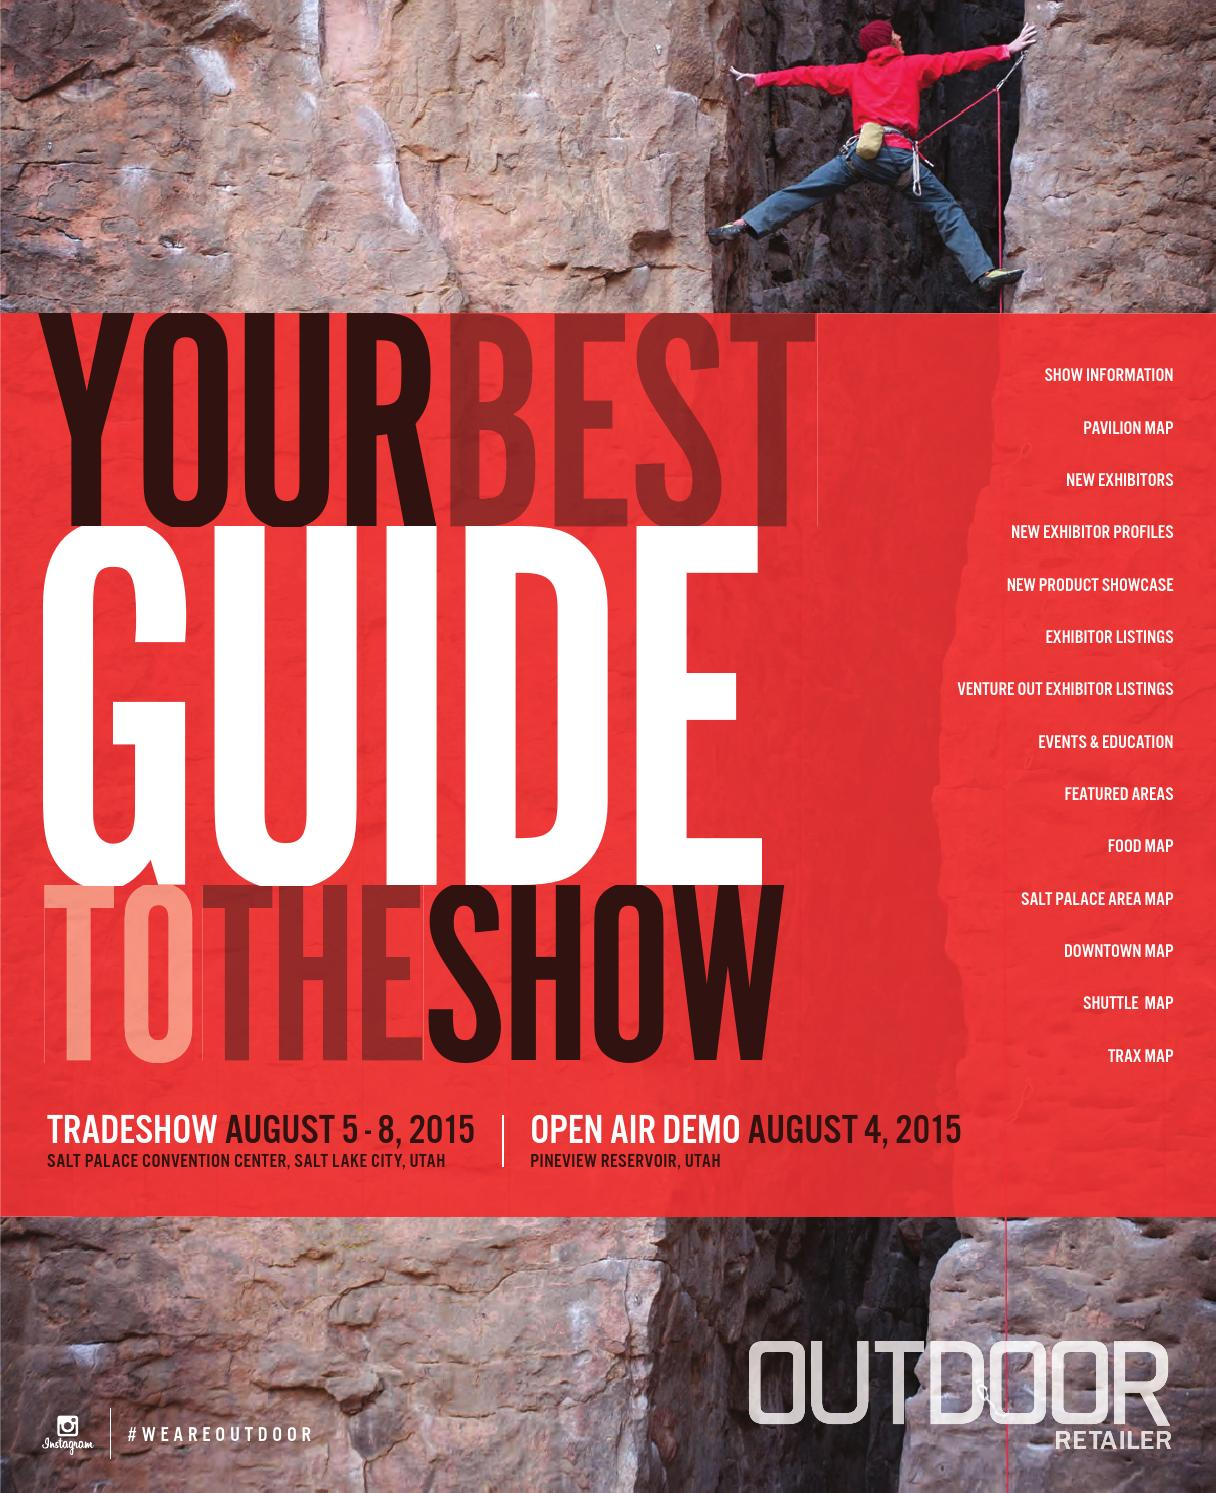 Su15 Show Directory by Outdoor Retailer - issuu cdfd64b8be5f